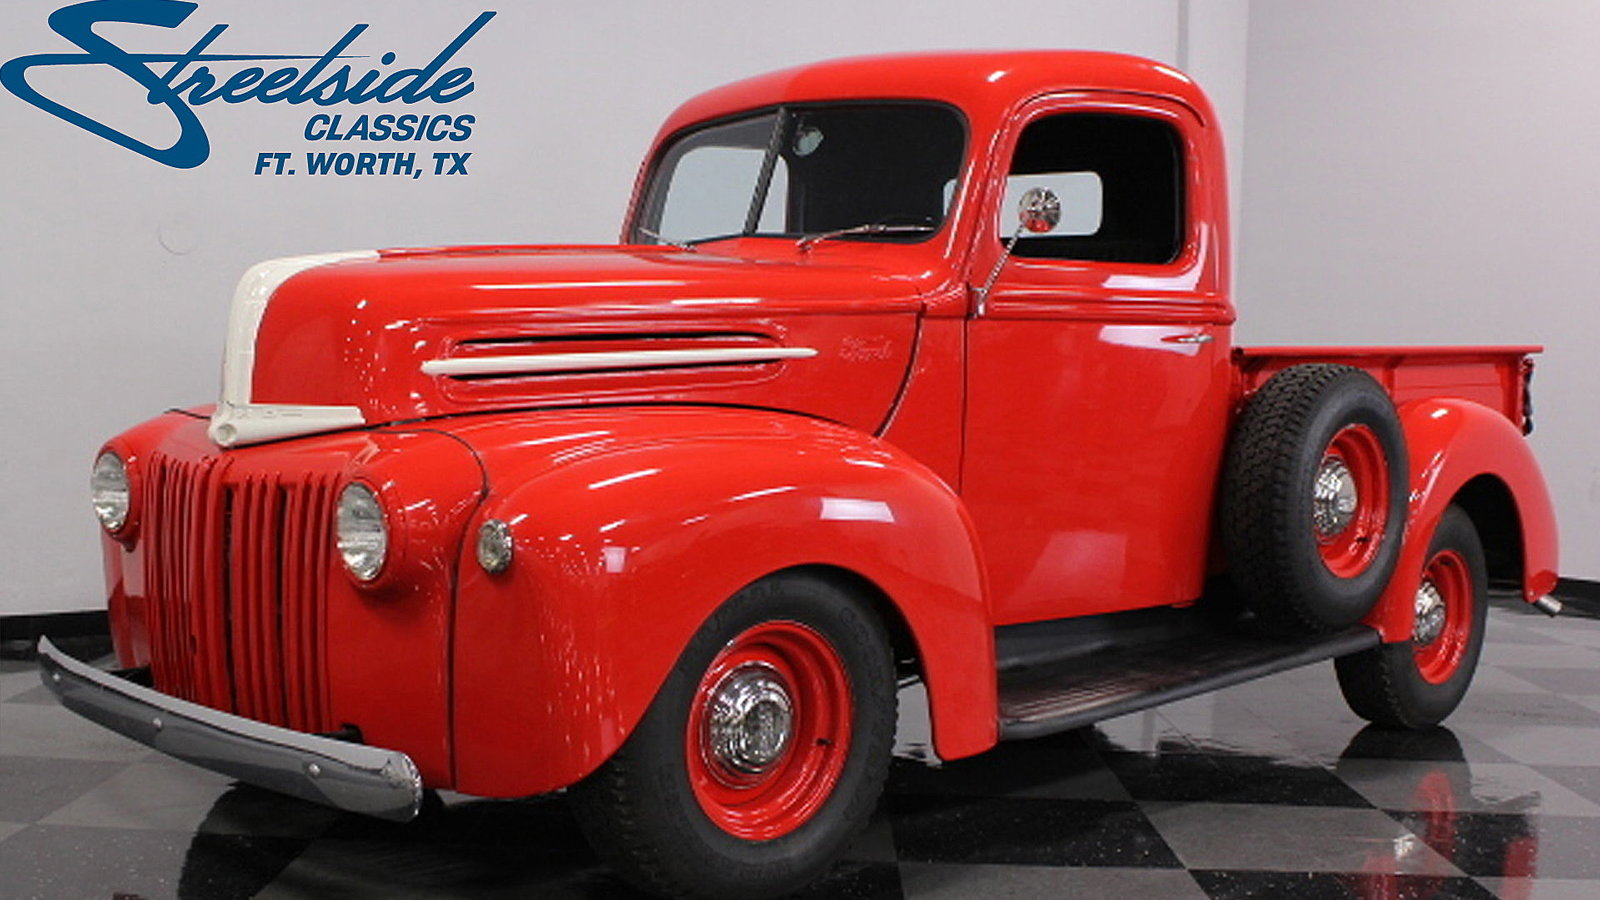 1945 Ford Pickup Shows Off its Wartime DNA